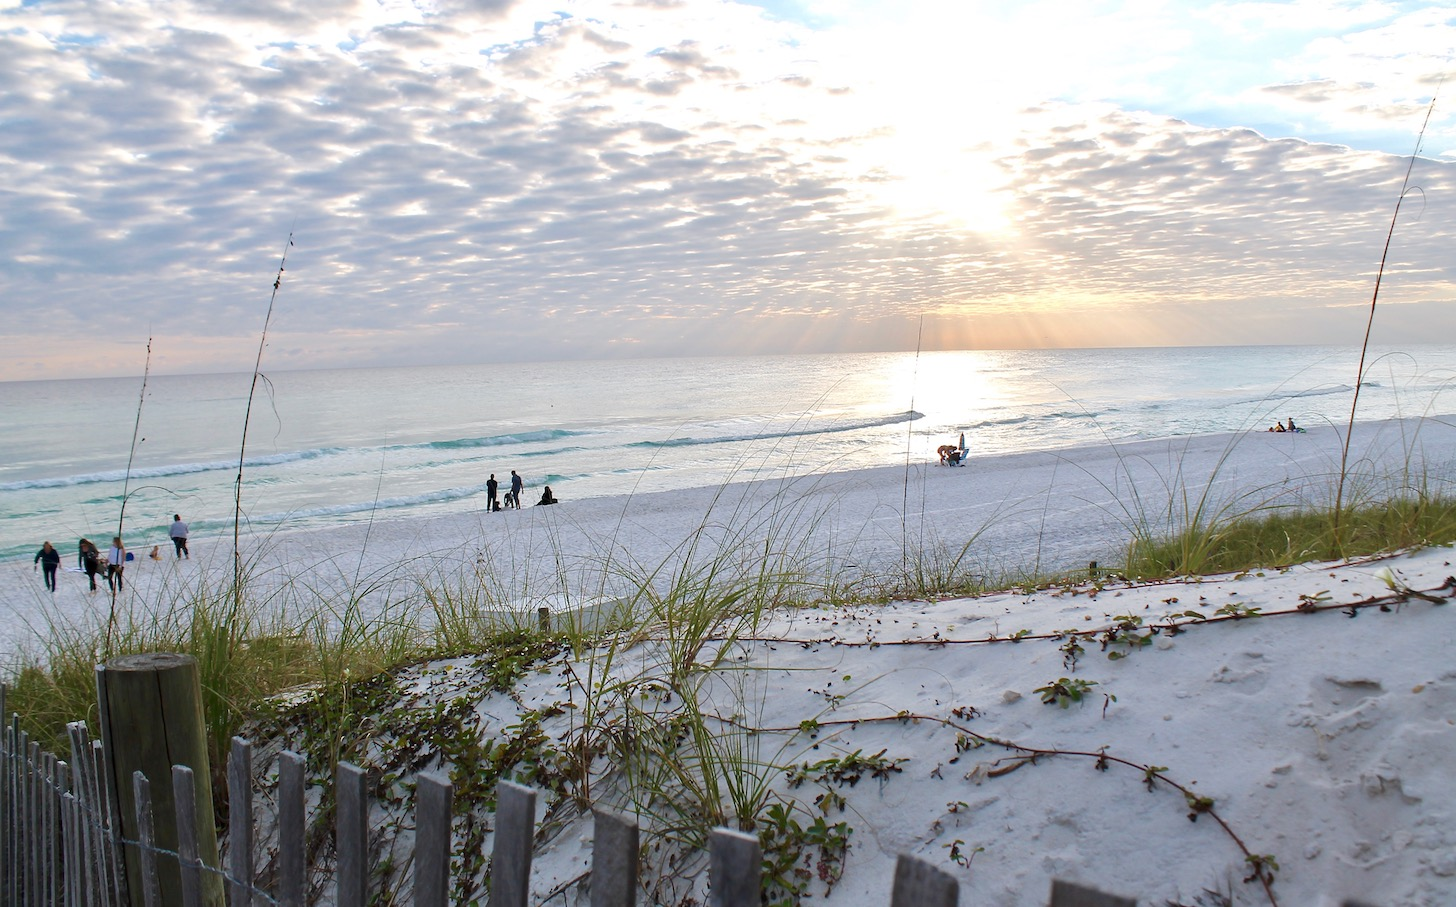 Beautiful Santa Rosa Beach, FL at sunset.